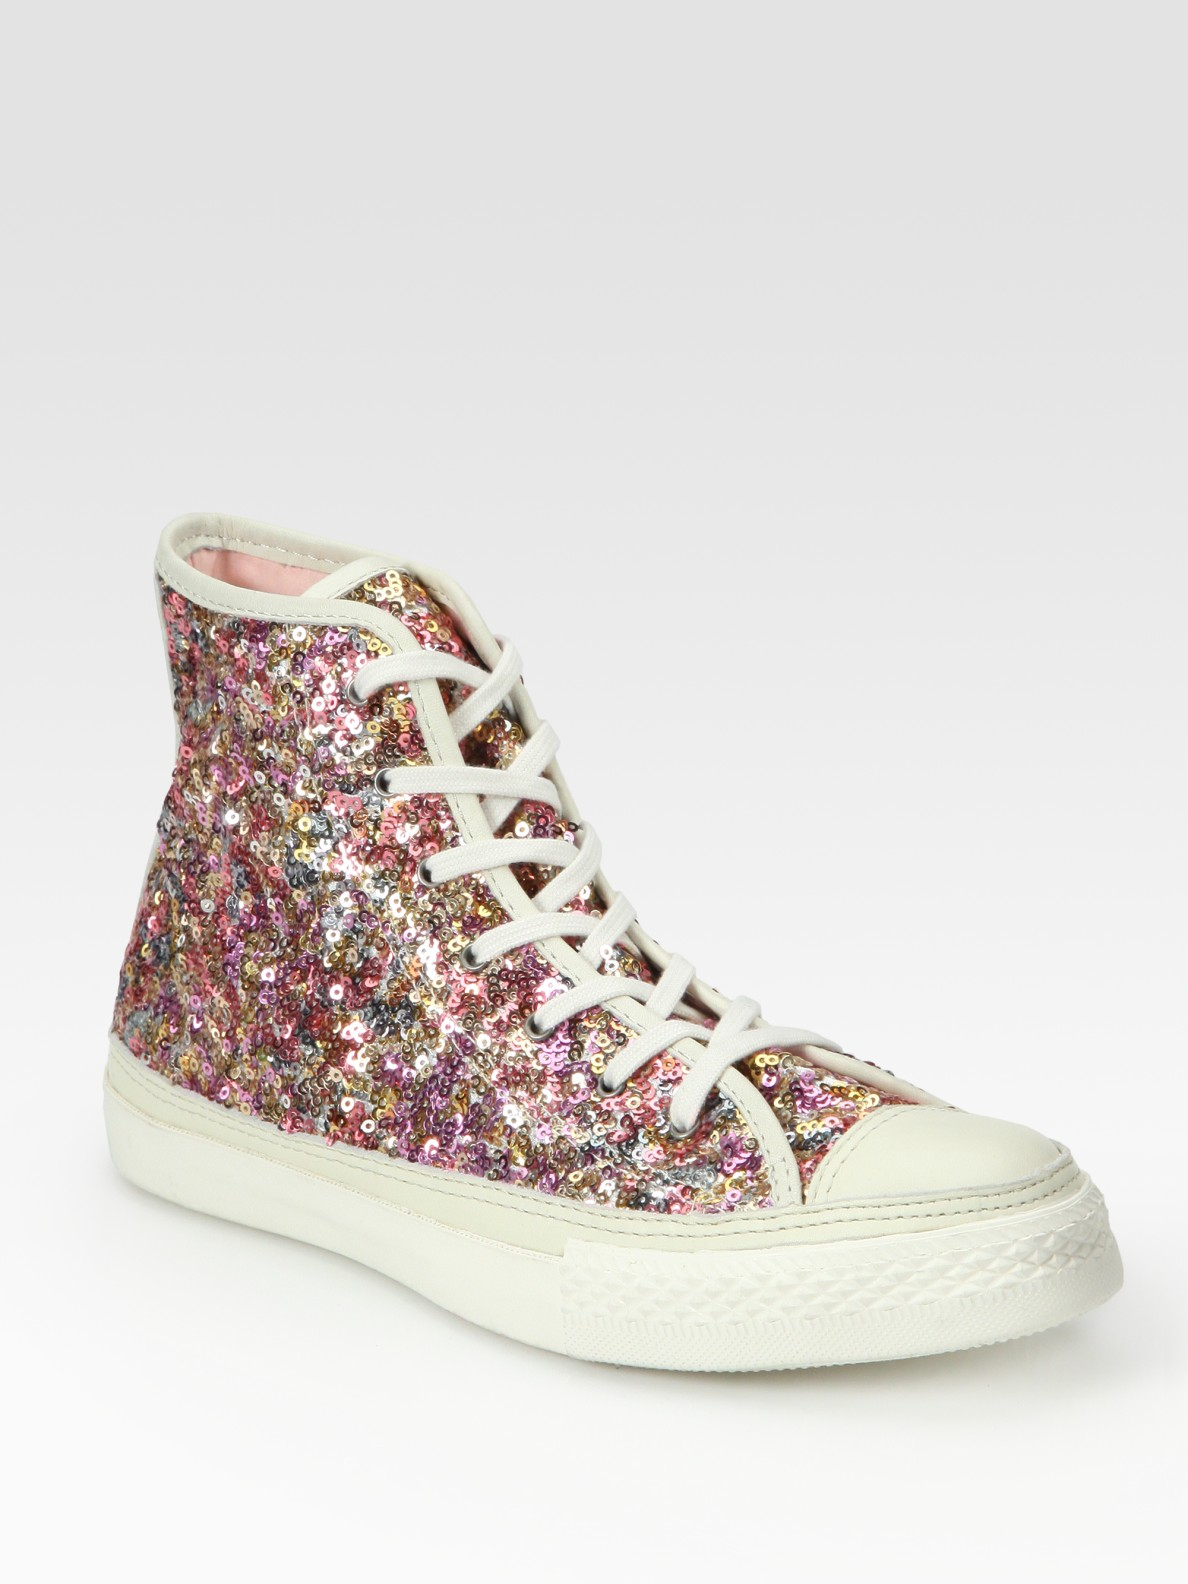 converse high tops sequin